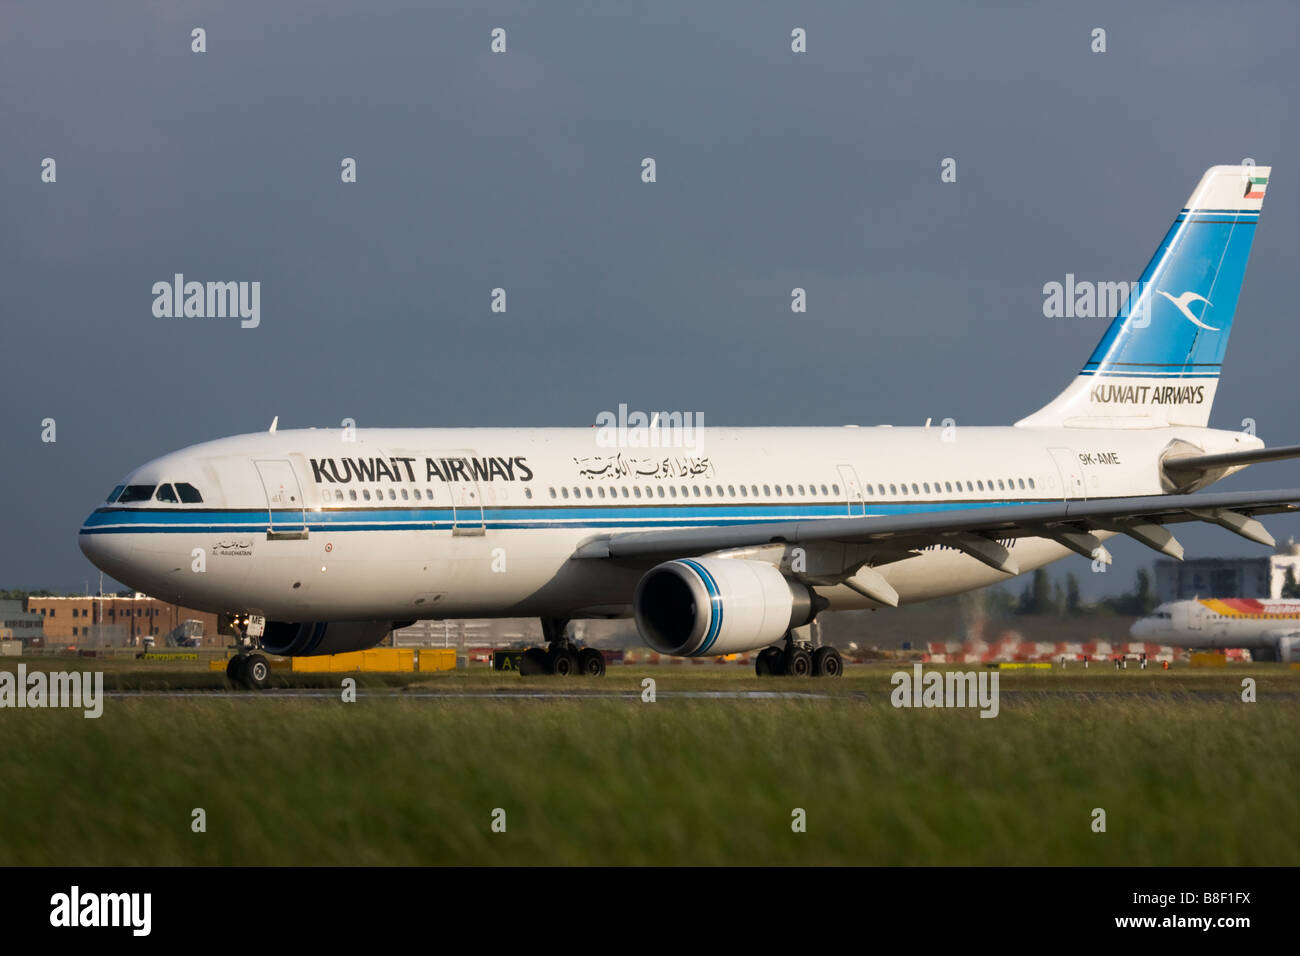 Kuwait Airways Airbus A300B4-605R taxiing for departure at London Heathrow airport. Stock Photo